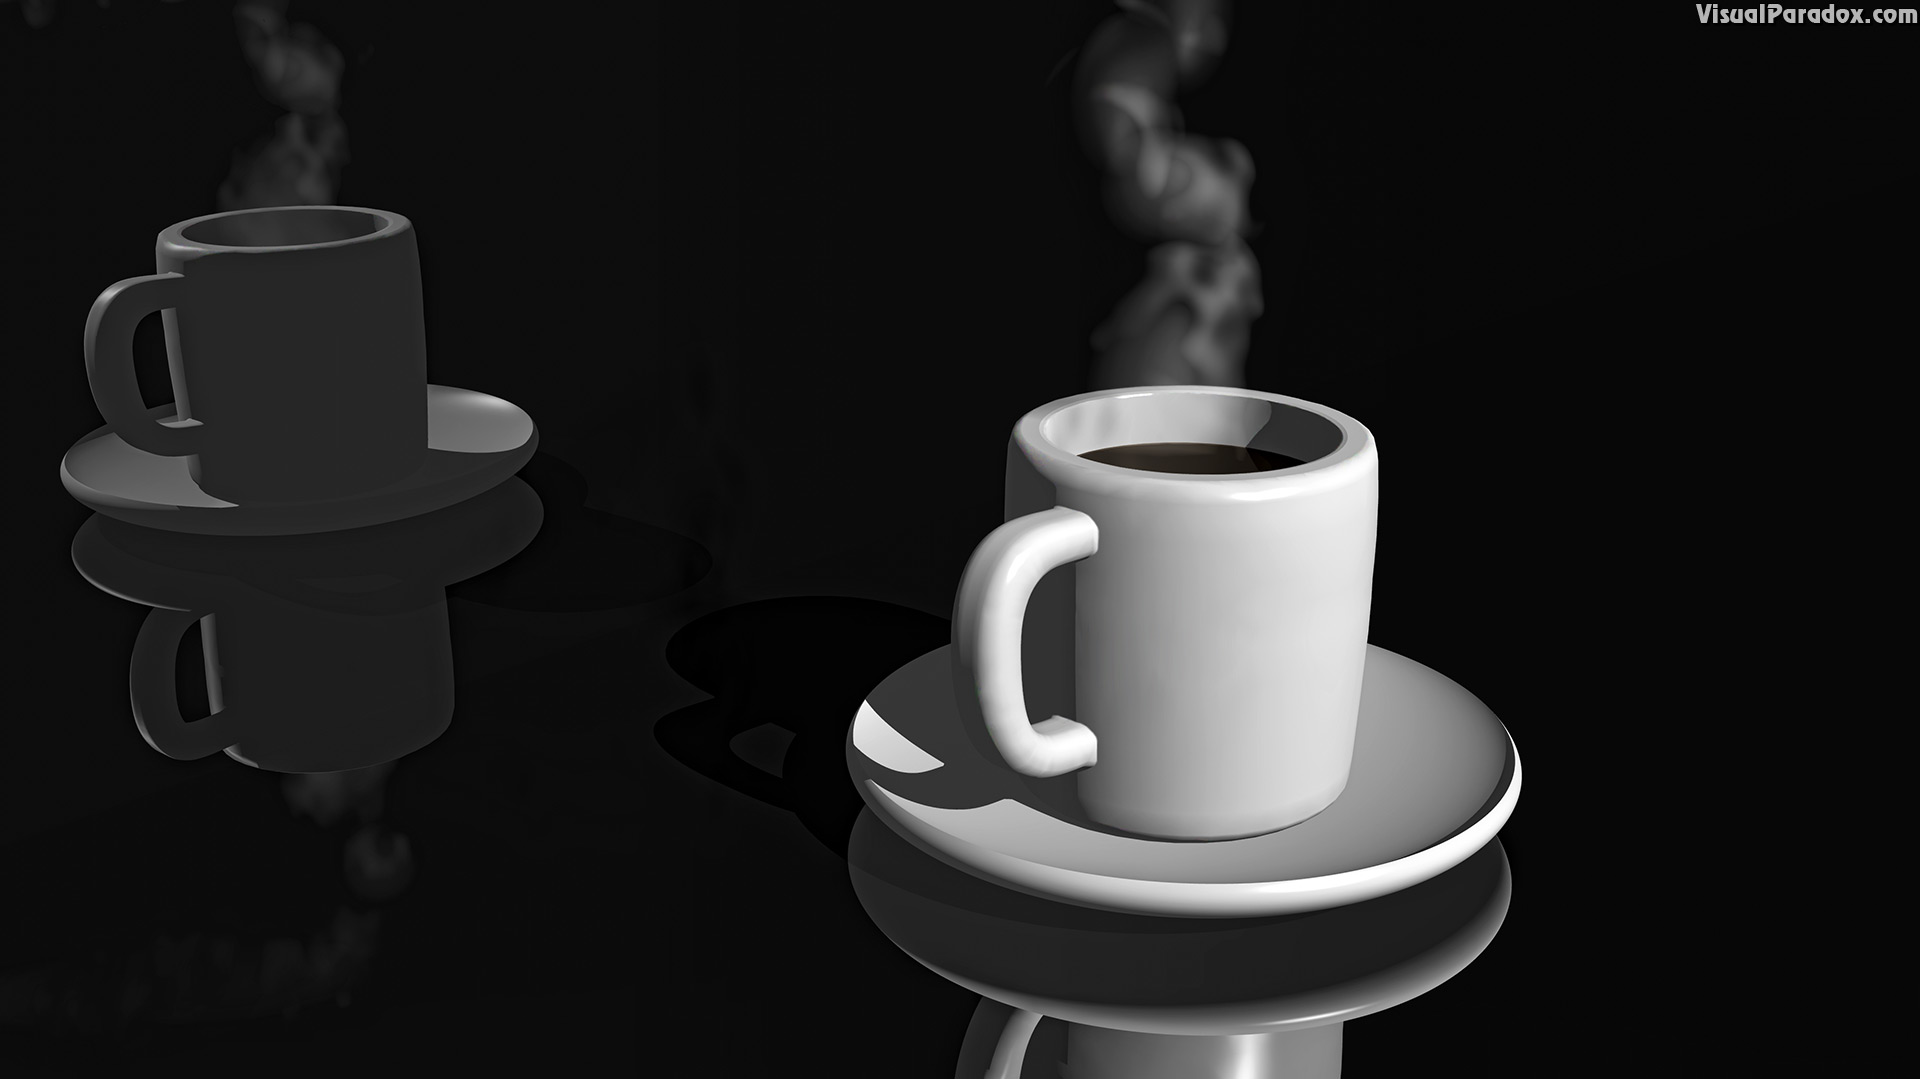 coffee, cup, steaming, reflection, black, tea, hot, 3d, wallpaper